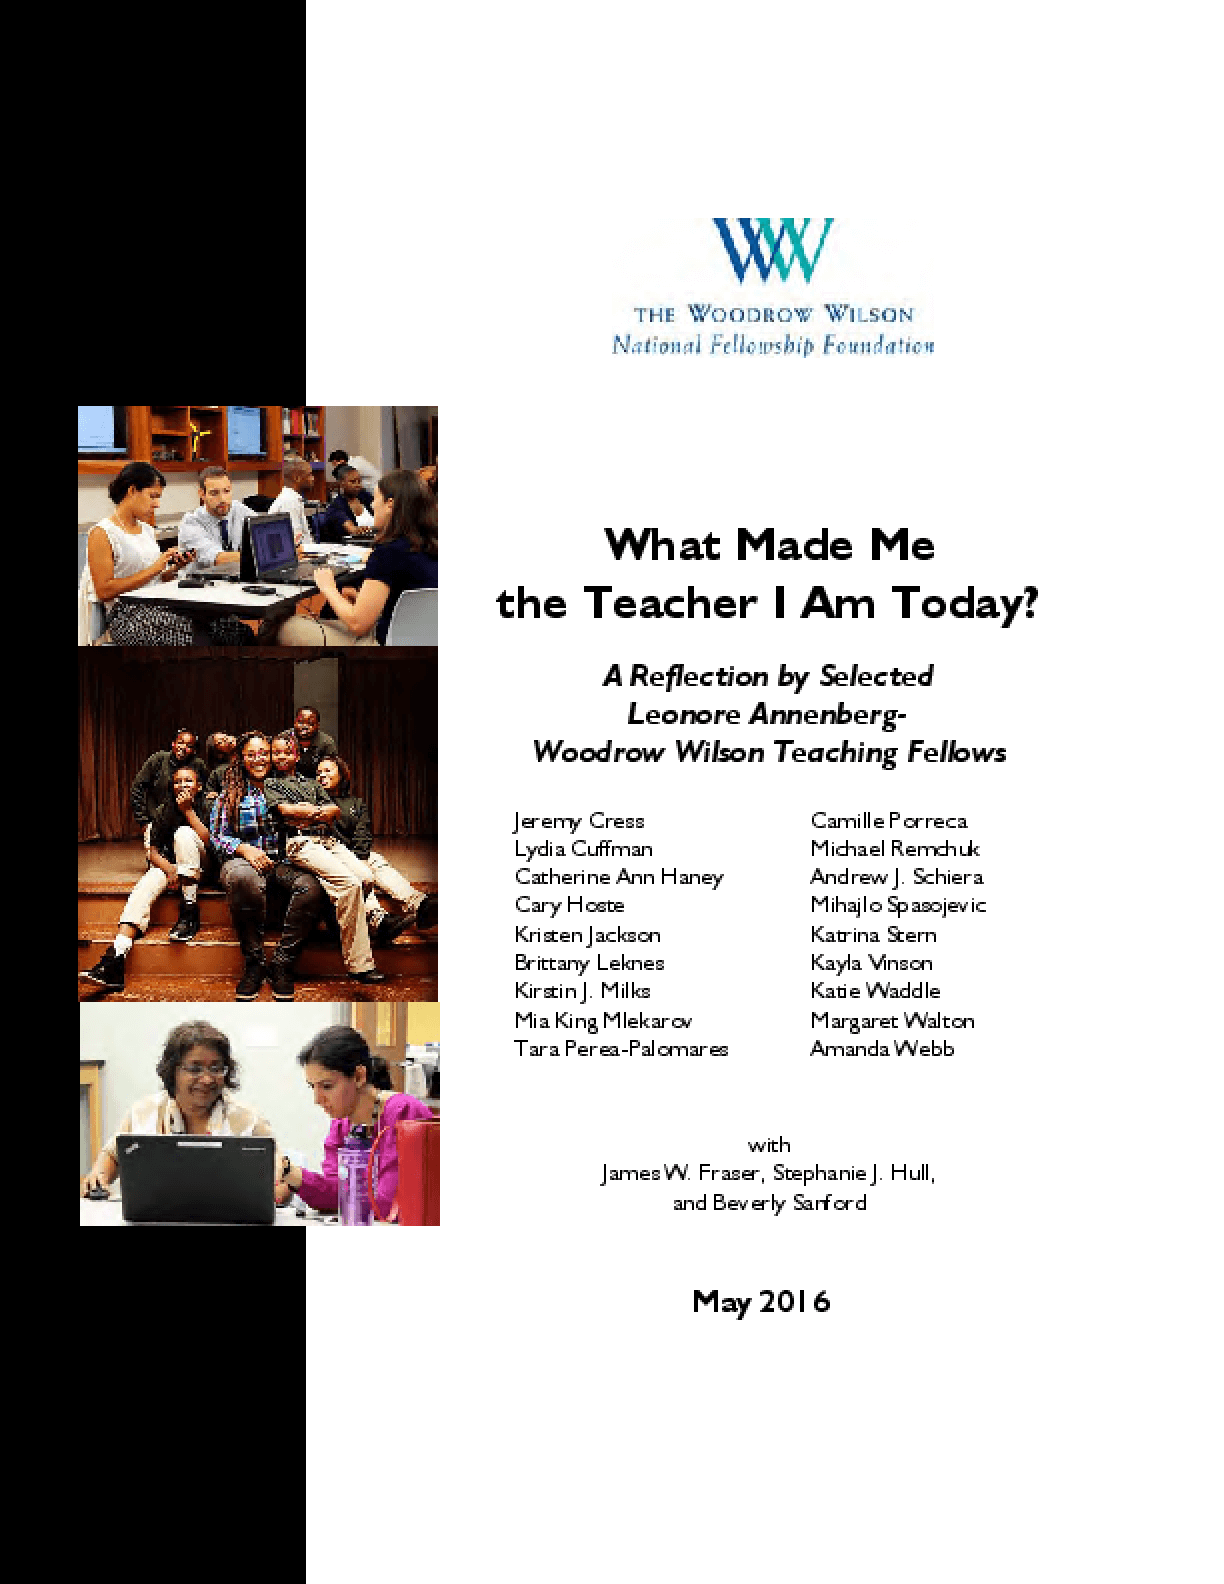 What Made Me the Teacher I Am Today? A Reflection by Selected Leonore Annenberg-Woodrow Wilson Teaching Fellows